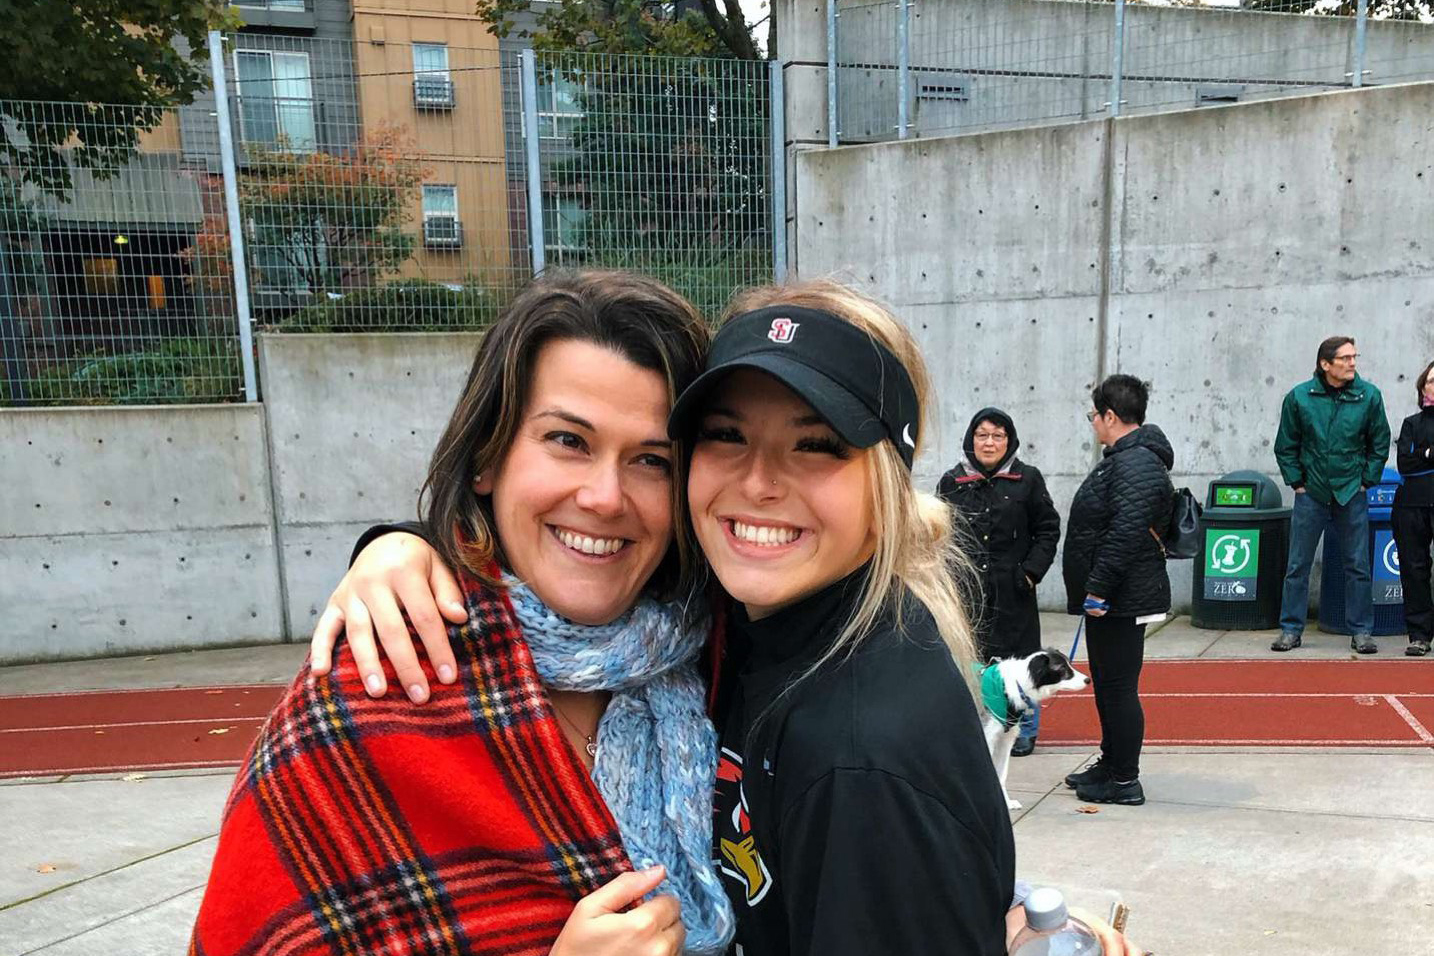 Bailey Haddock (right), a first-year on Seattle U's softball team, looks forward to working with her teammates for a spot in the top 25 teams.